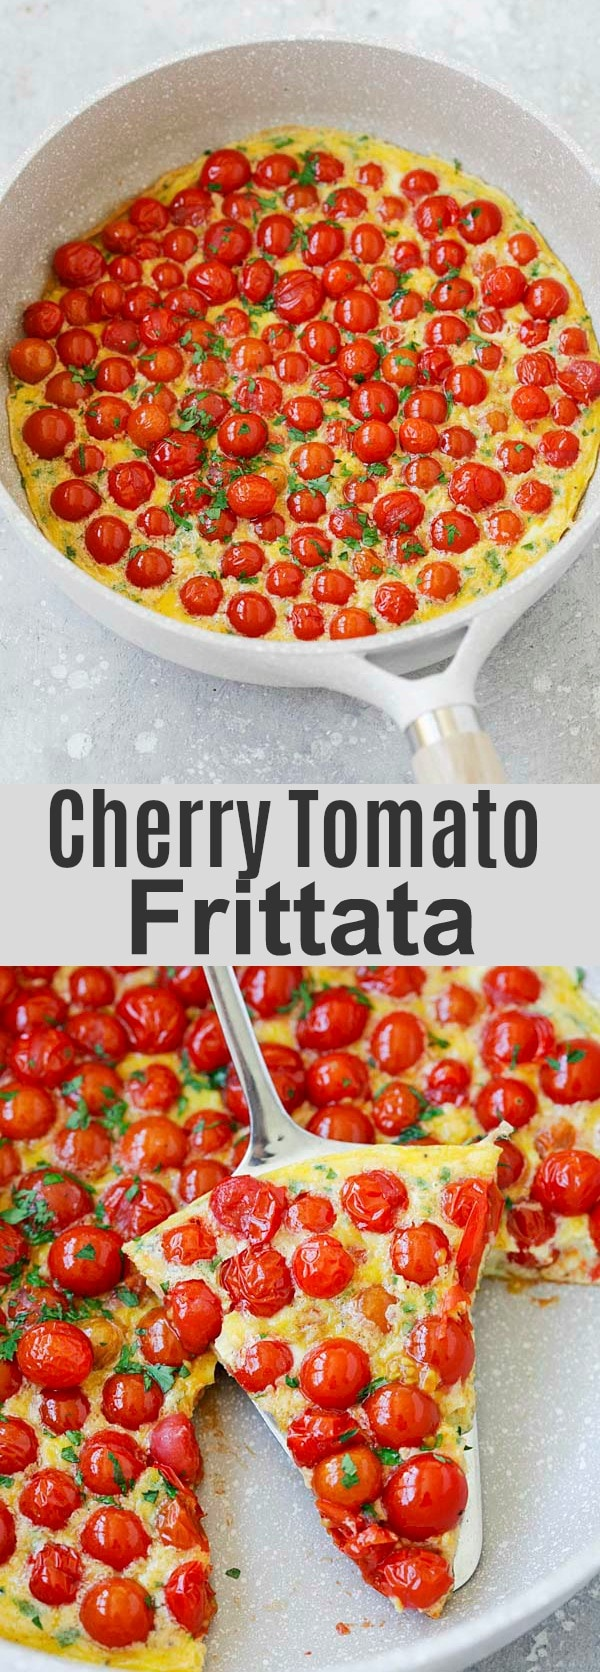 Cherry Tomato Frittata - healthy and easy Italian frittata recipe. Loaded with fresh cherry tomatoes and Parmesan cheese, every bite is bursting with juicy flavors. So good!